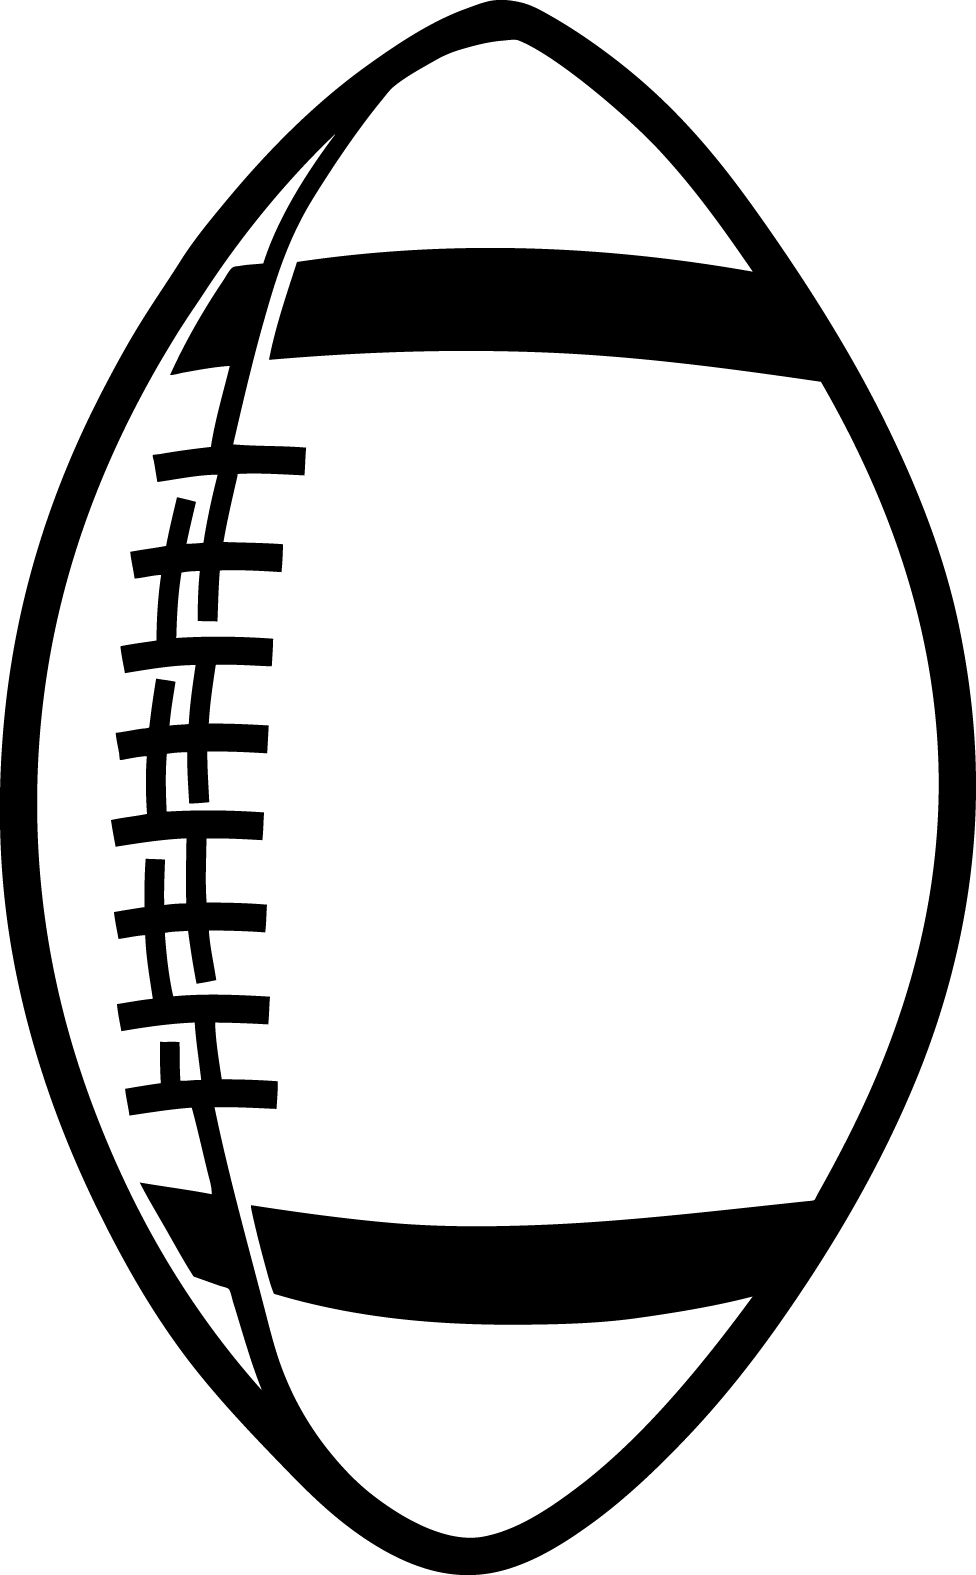 Football jersey clipart. Dragonfly outline panda free